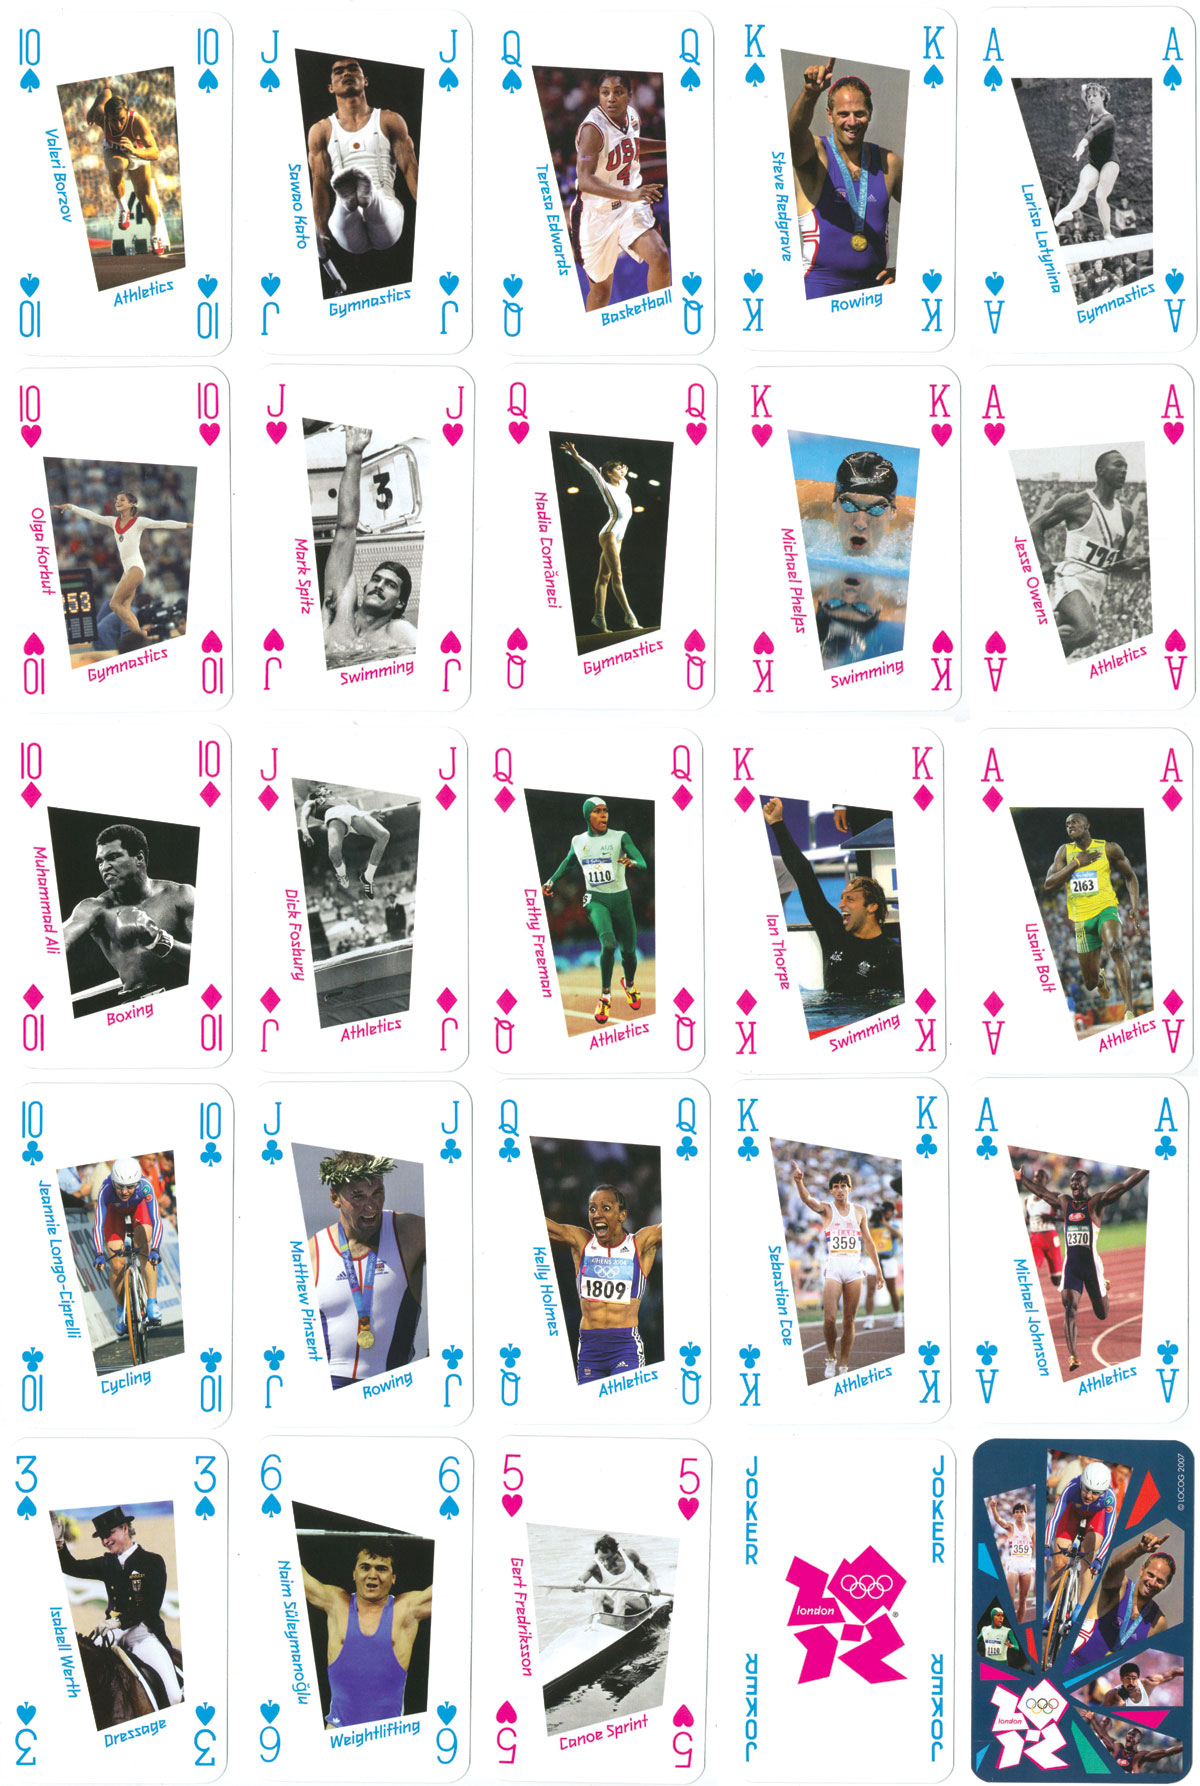 playing cards commemorating the Olympic Games 2012, London, by Winning Moves under license from LOCOG